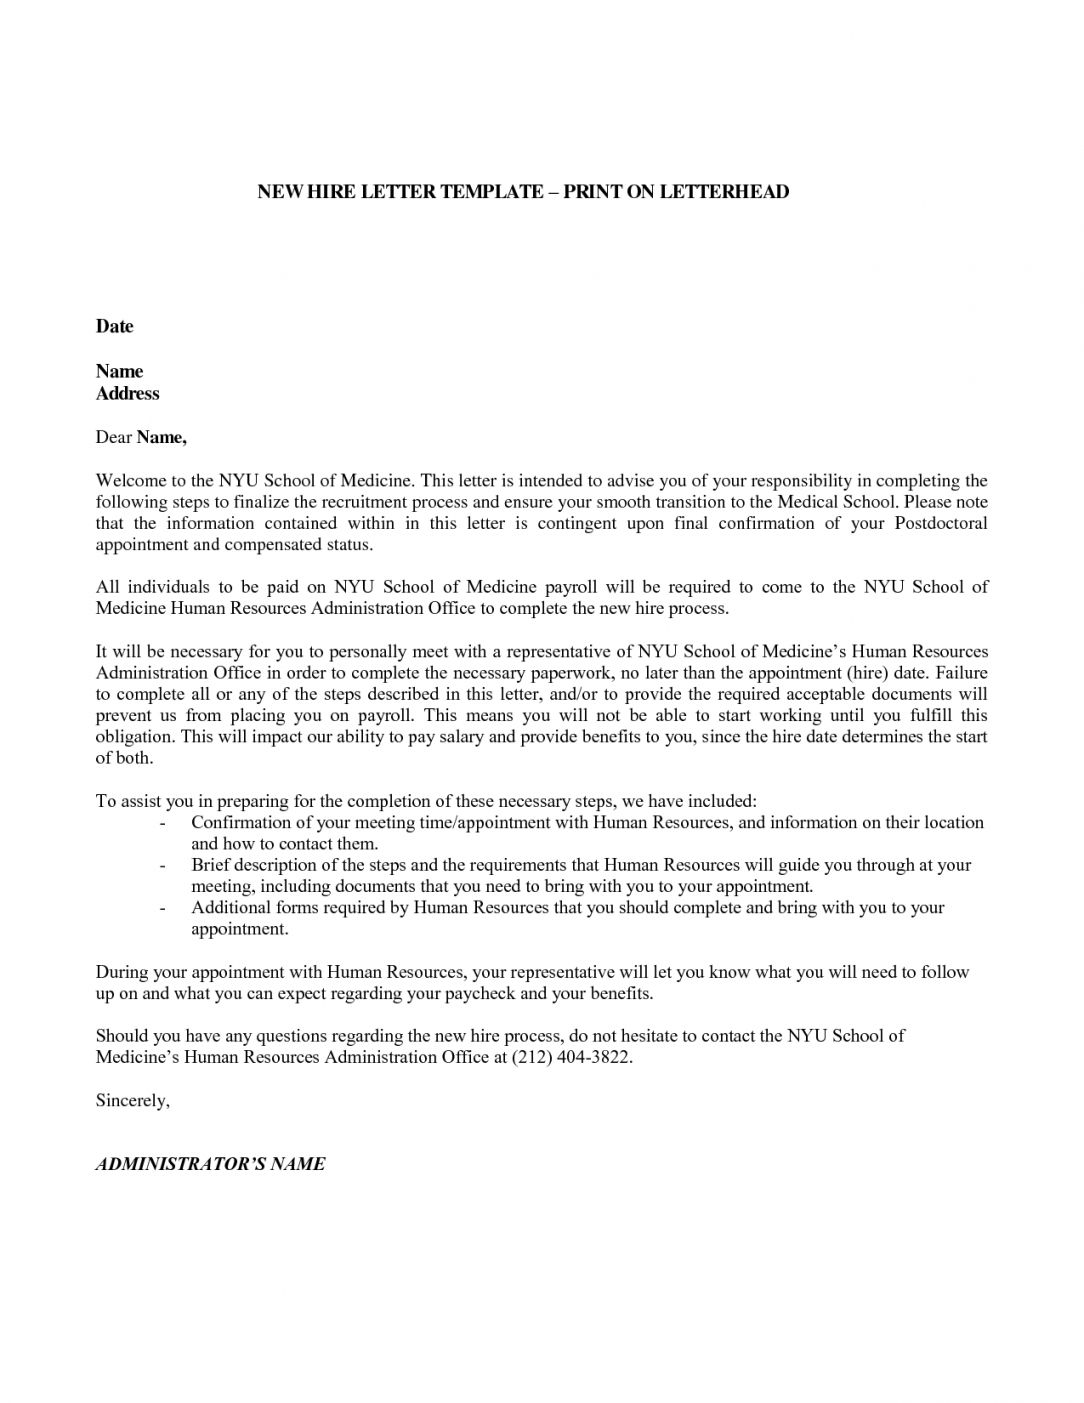 Browse Our Sample Of Apartment Welcome Letter Template For Free Letter Templates Business Letter Template Welcome Letters